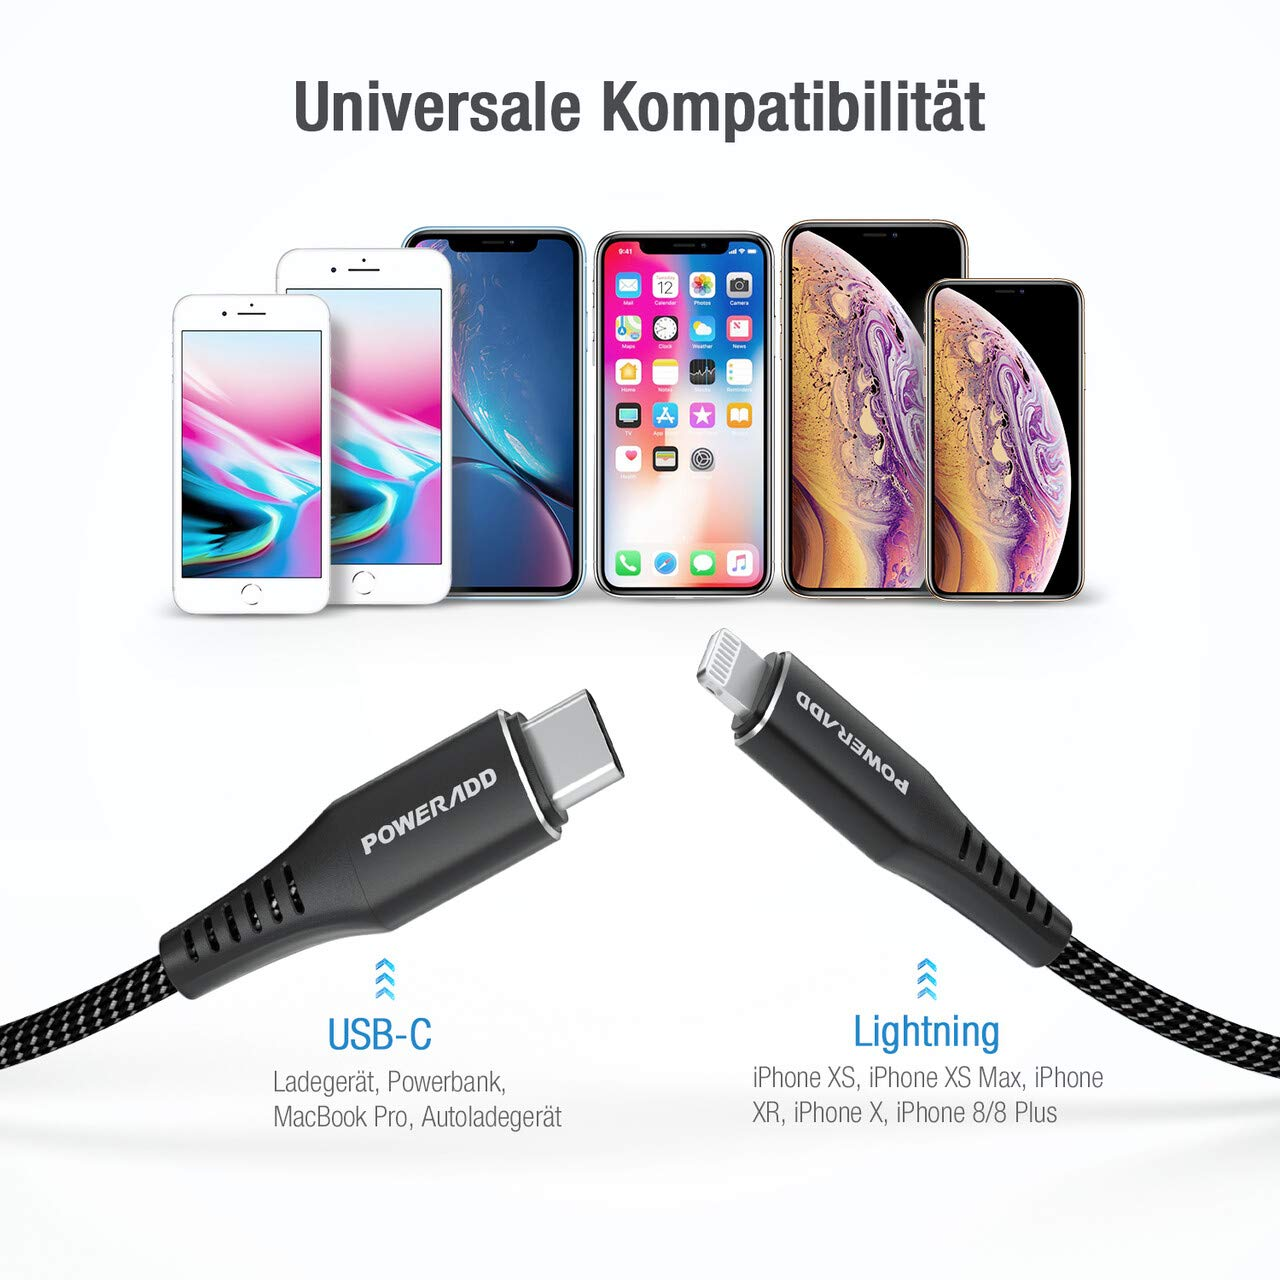 POWERADD USB C auf Lightning Kabel, 1 m Typ C Lightning Ladekabel mit Apple MFi-Zertifiziert, Power Delivery Schnellladen, Nylon-umflochtenes Datenkabel für iPhone und Typ-C Ladegeräte